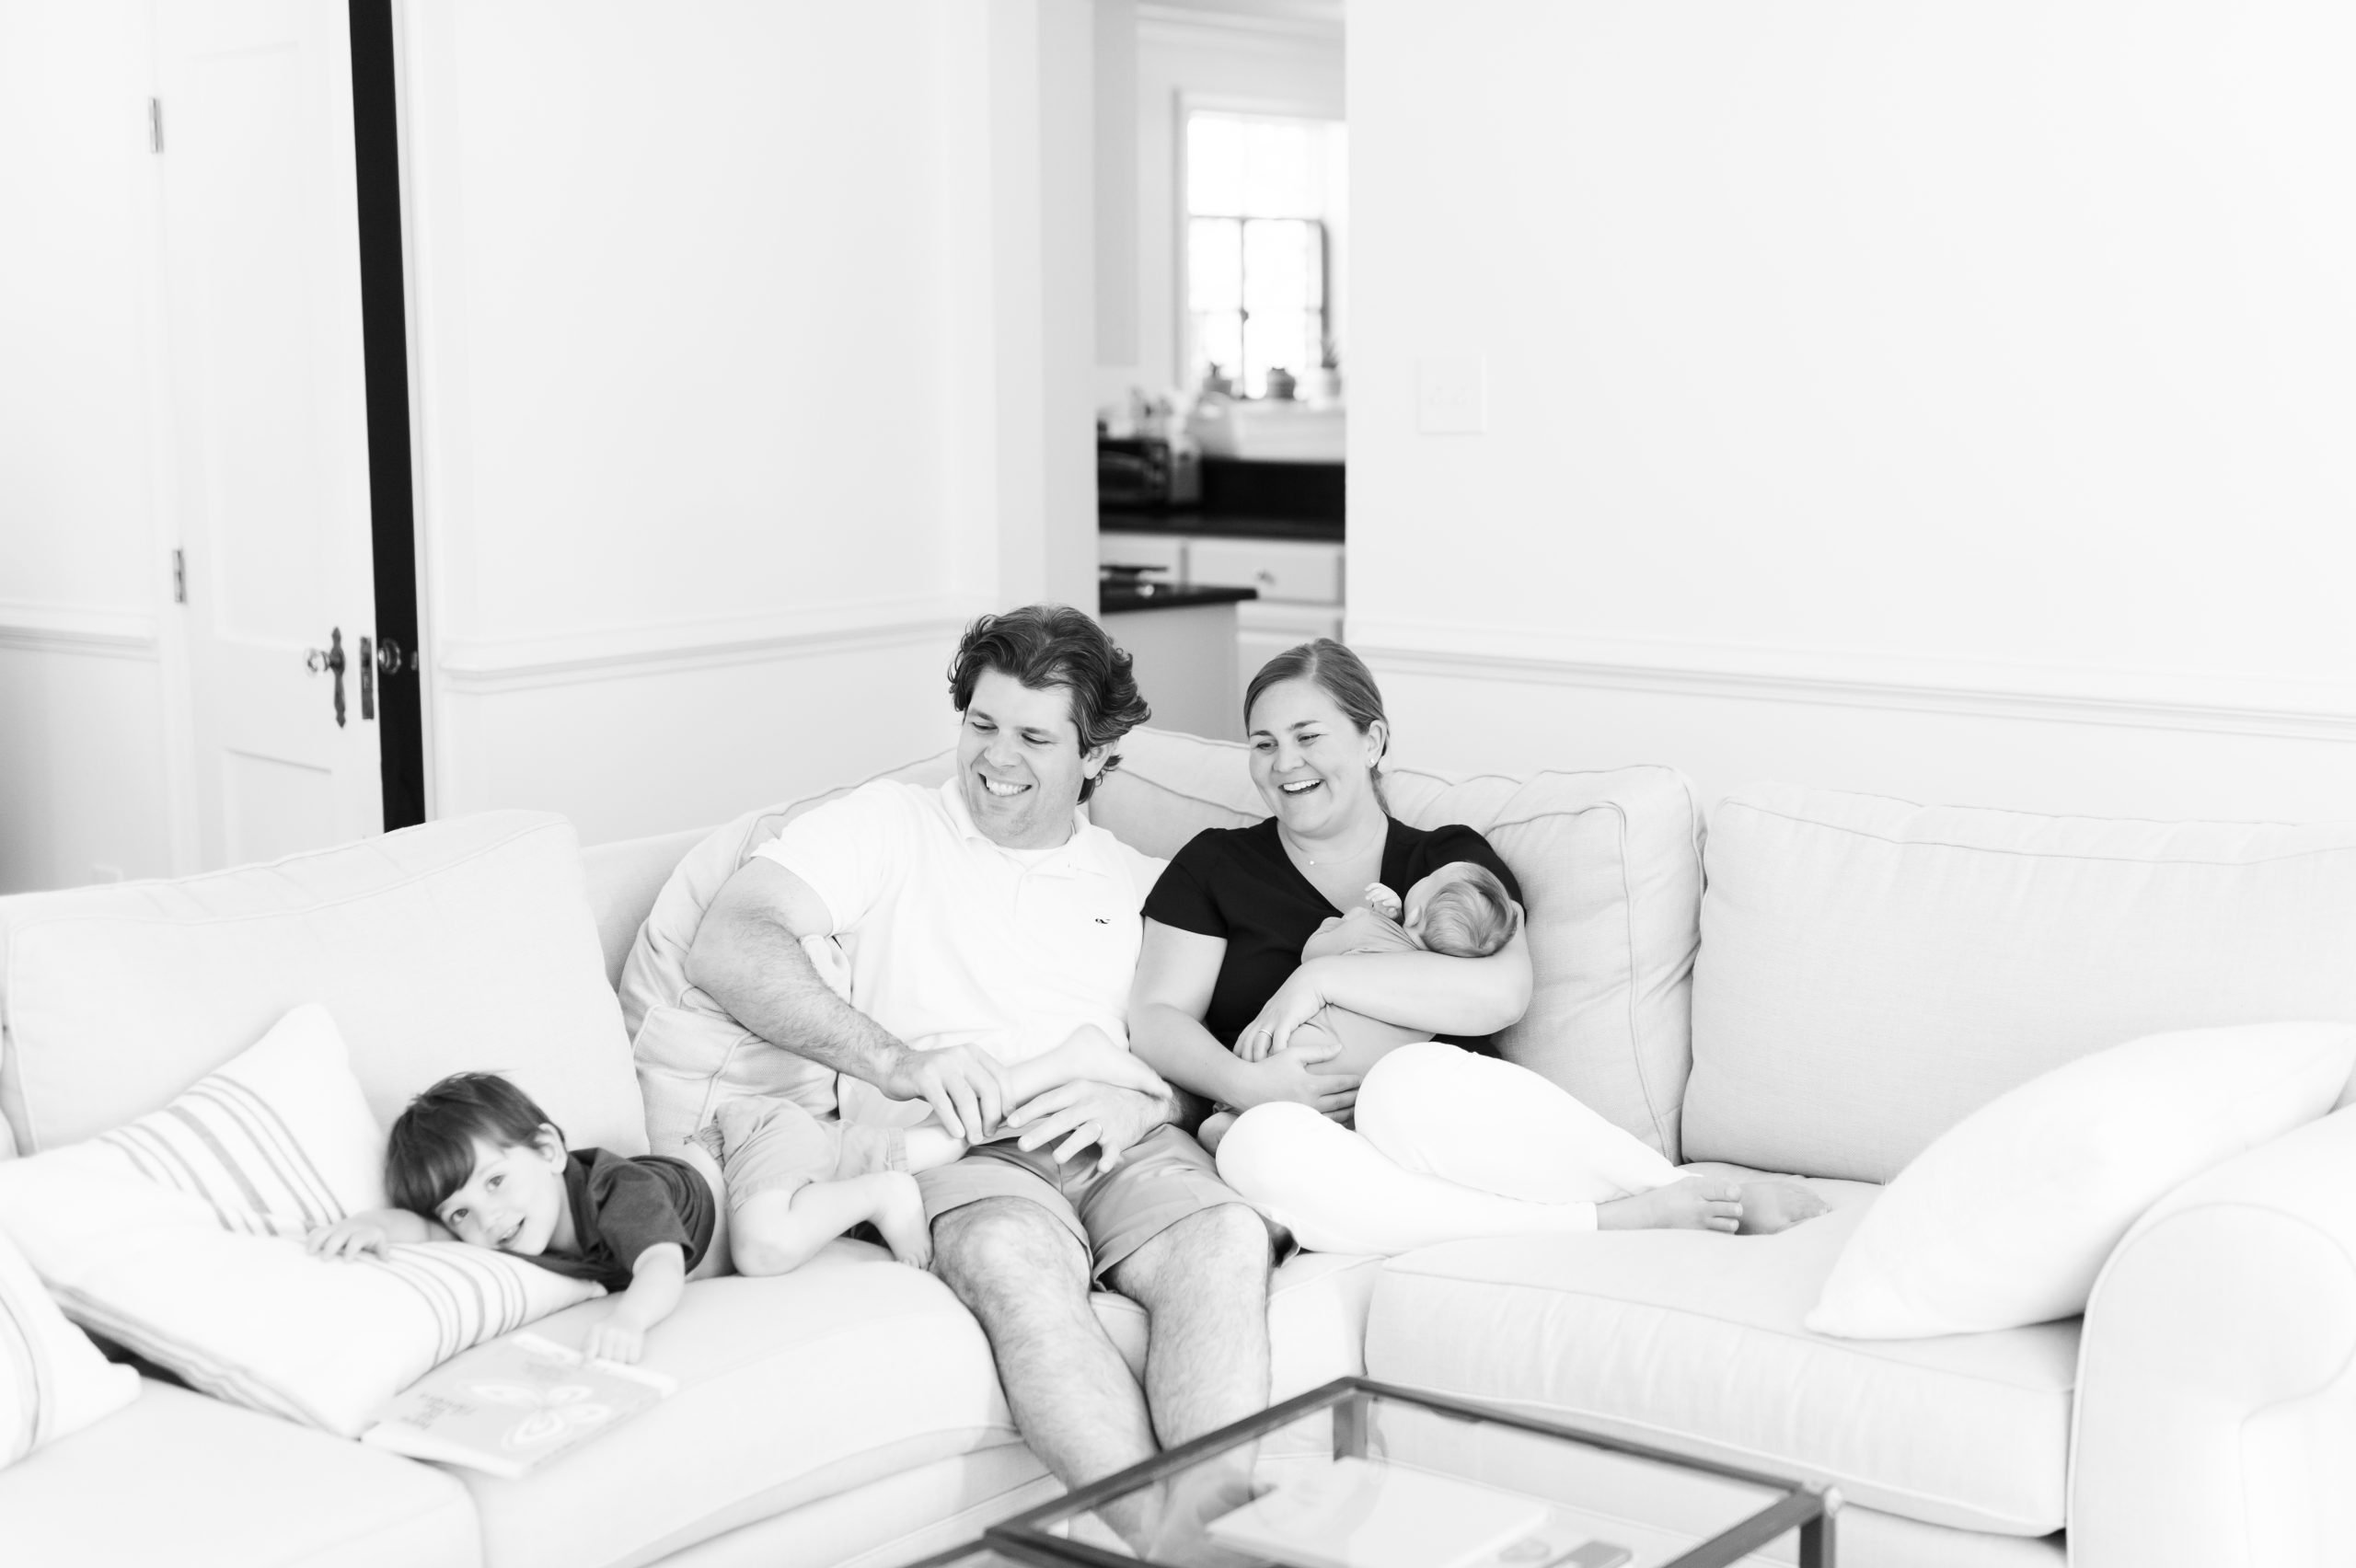 family wiht newborn sitting on couch